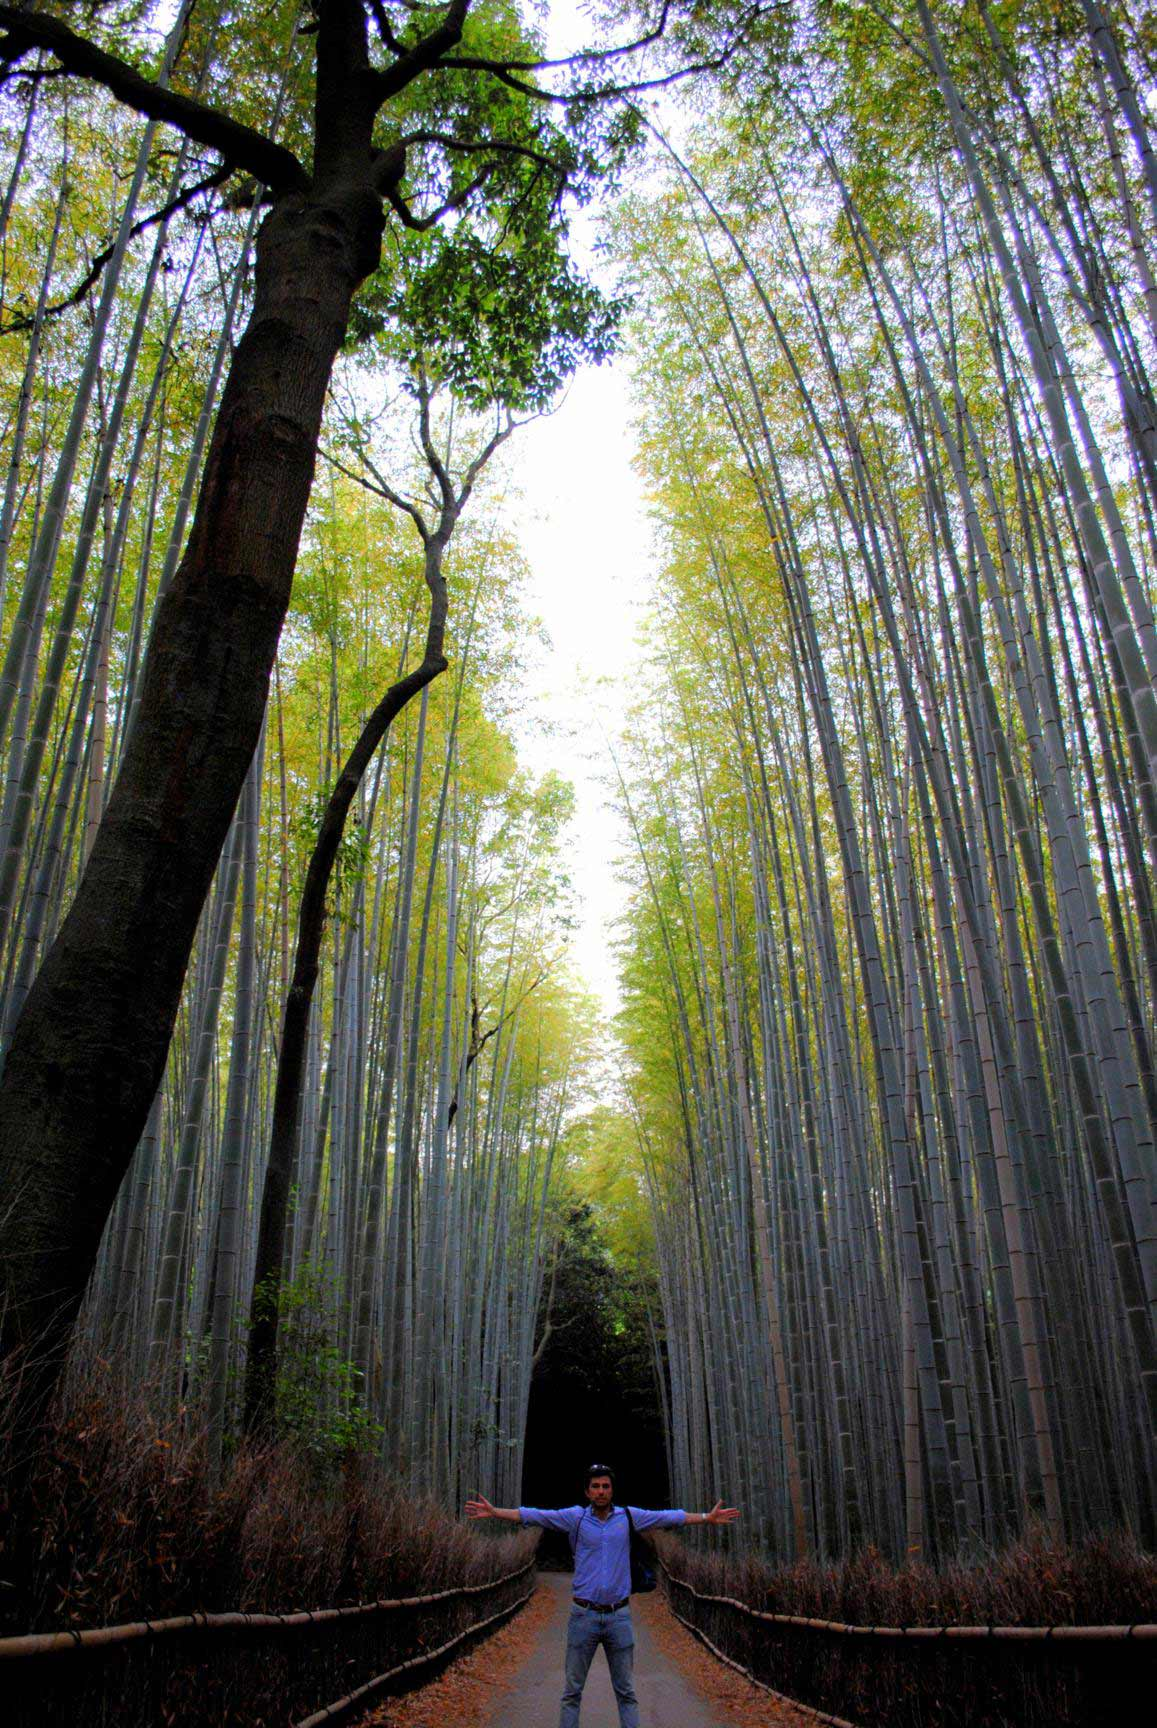 bosque-bambues-arashiyama-9